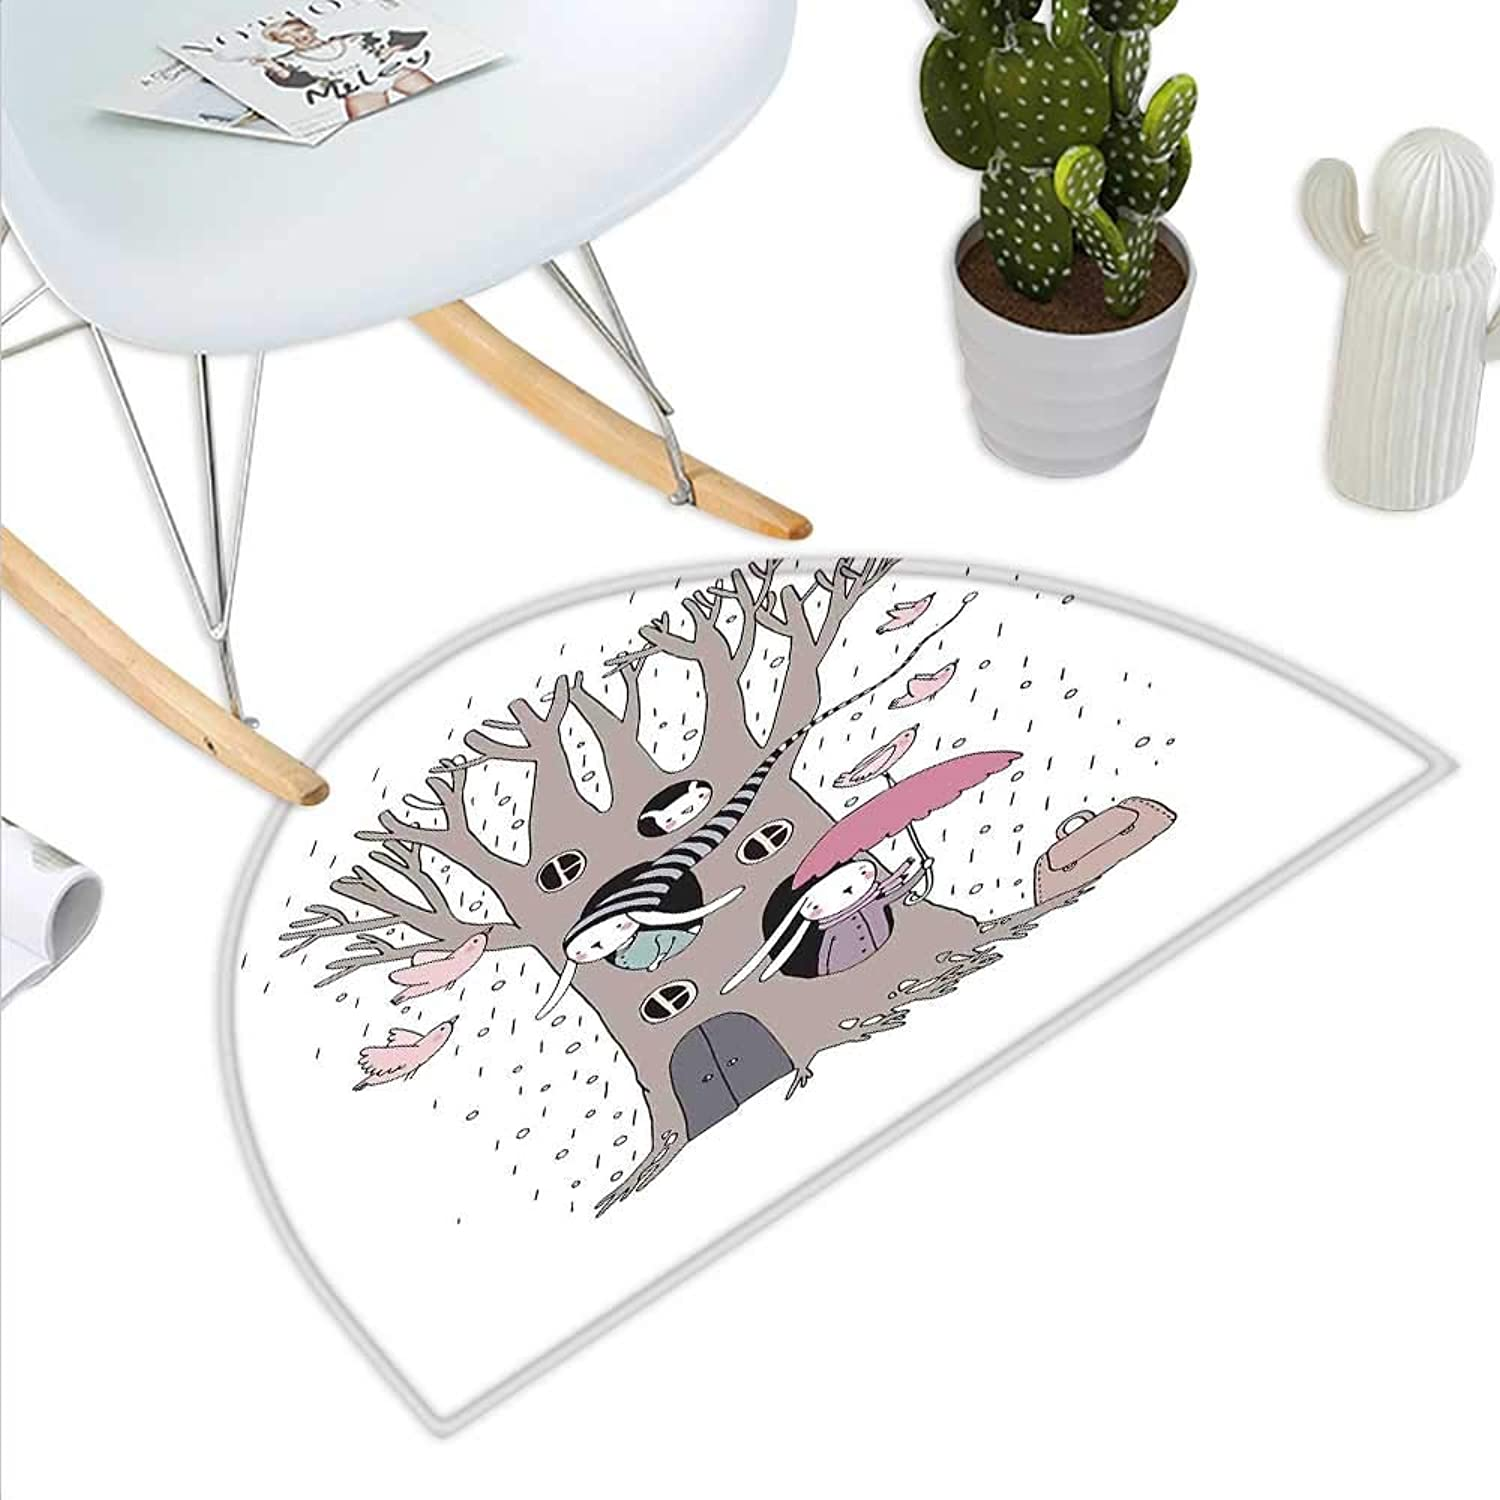 Tree Semicircle Doormat Bunny Family Living Inside The Hollows of a Tree Rainy Weather Flying Pink Birds Halfmoon doormats H 43.3  xD 64.9  Taupe Pale Pink